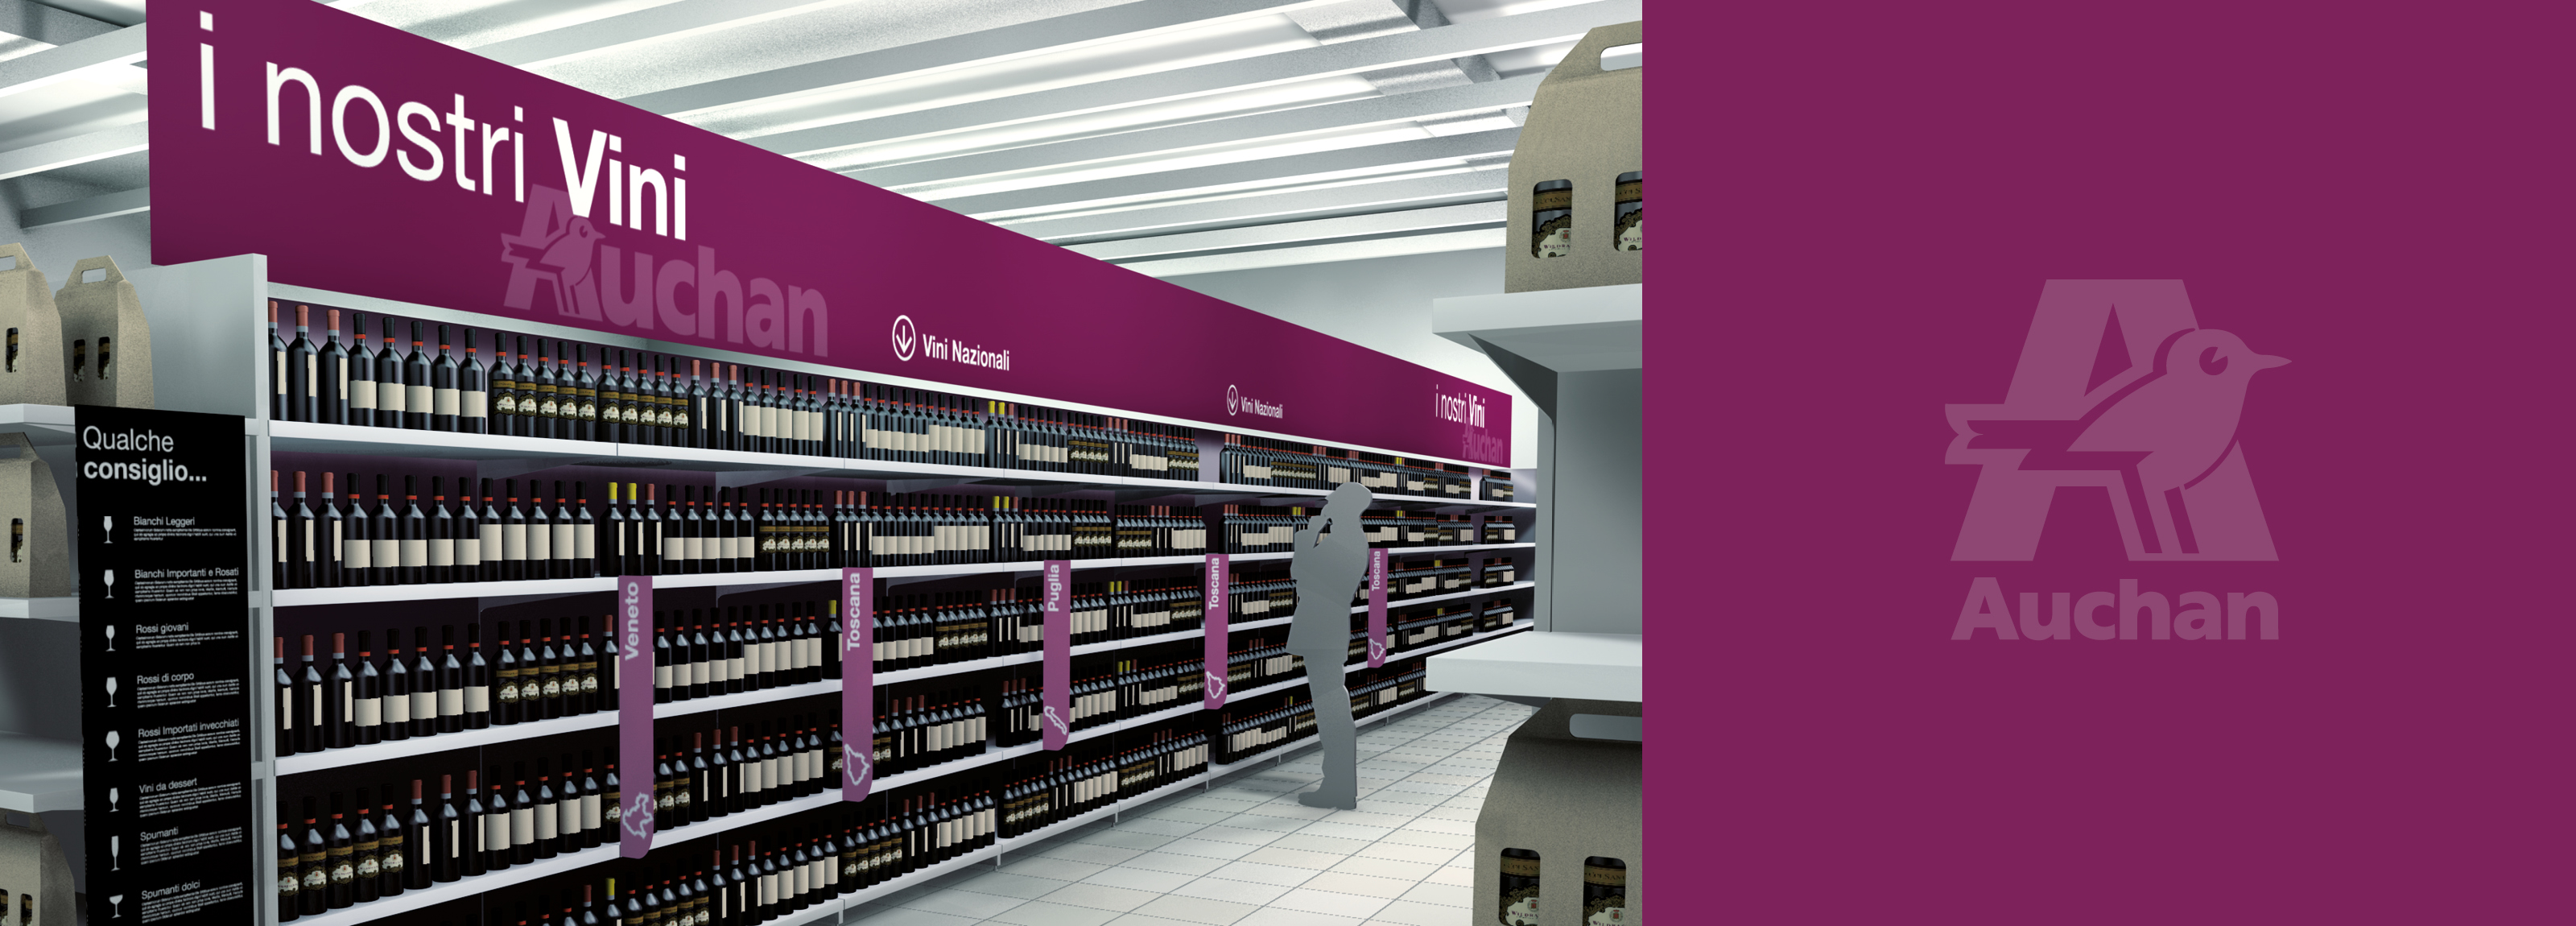 Auchan - Auchan <br> Retail Design and Signage  System